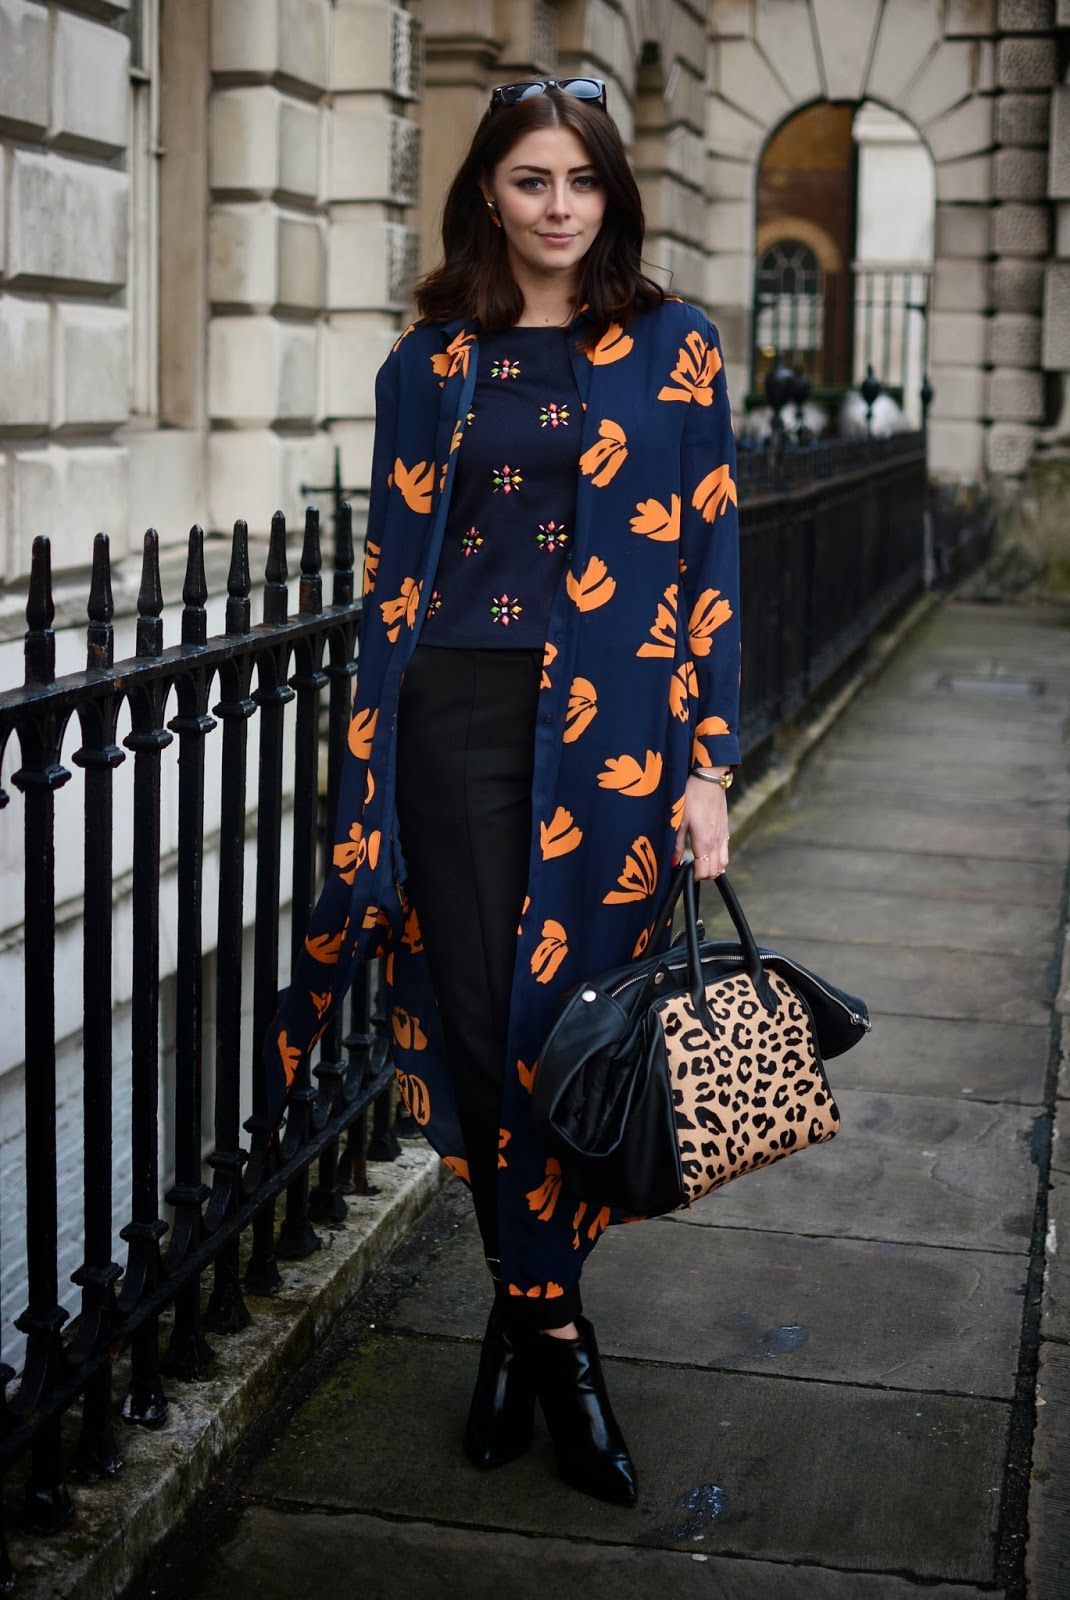 Hats off to Emma Hill for a effortless mix of patterns and prints. #EJSTYLE